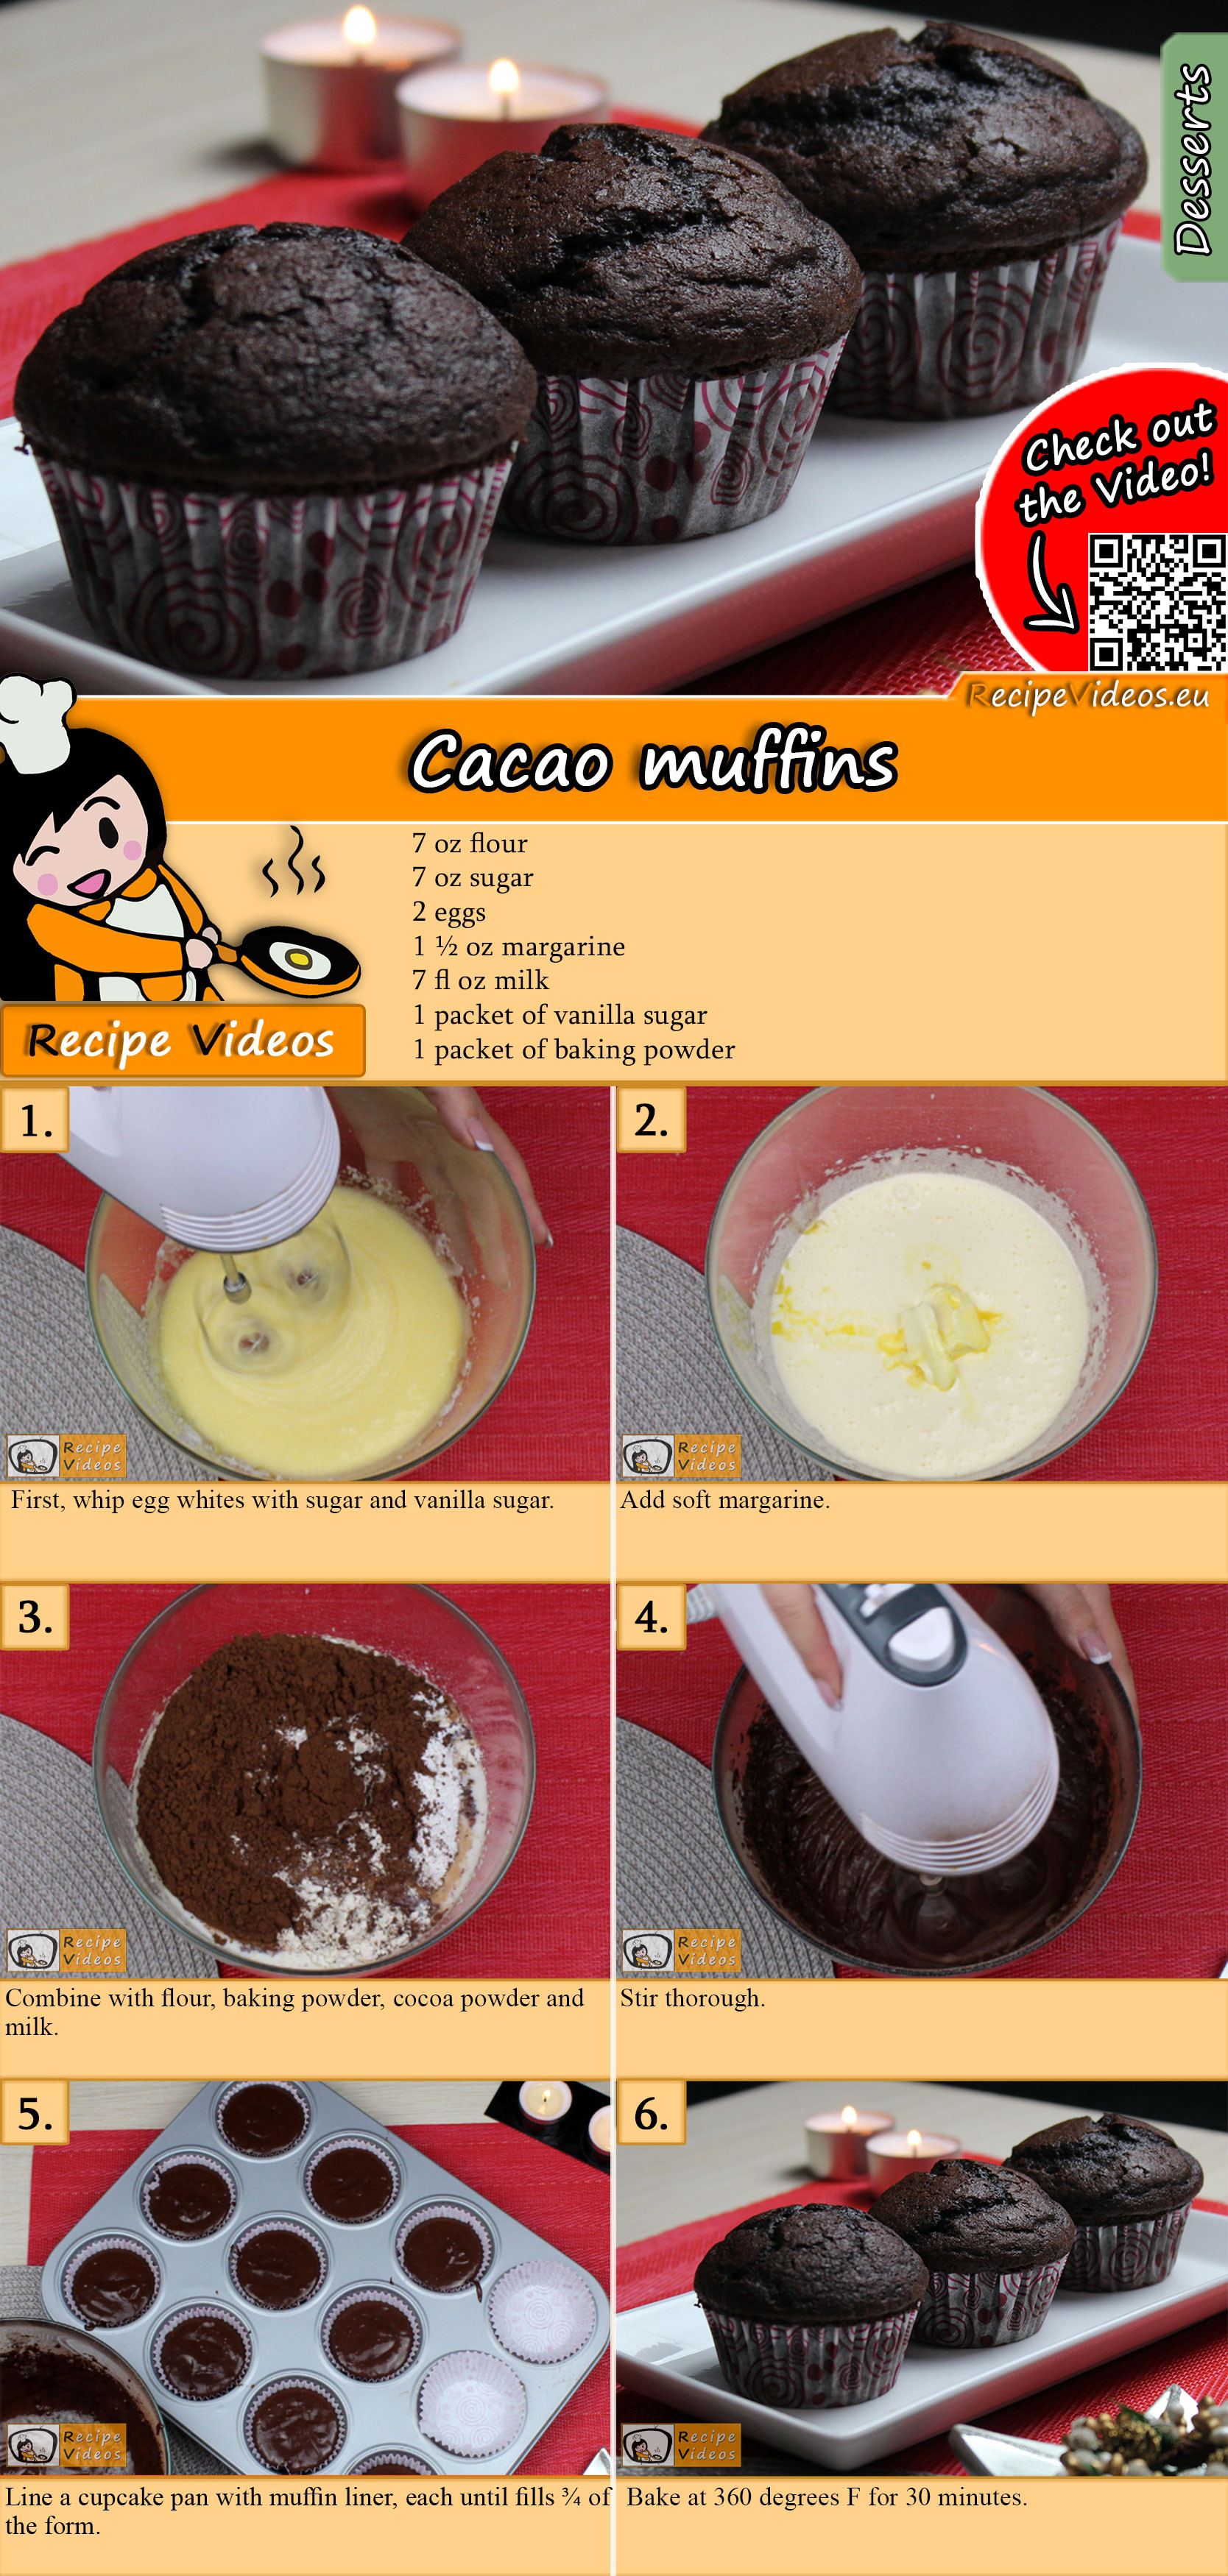 Cacao muffins recipe with video